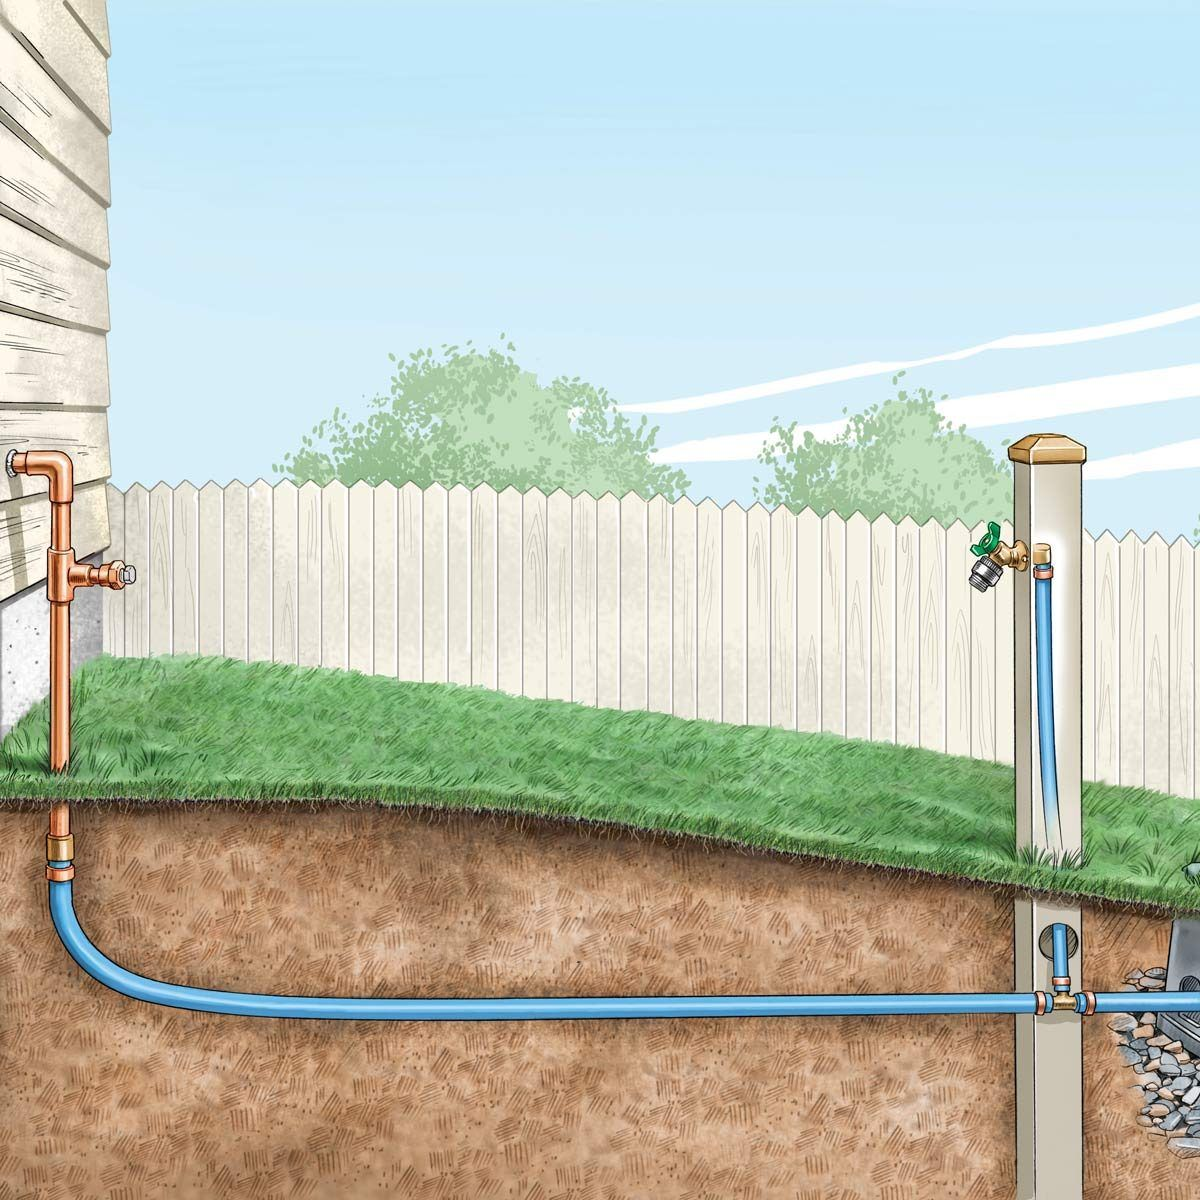 Make watering your lawn or garden easier with a remote outside faucet. Stop lugging around that hose and learn how to install an outdoor faucet.